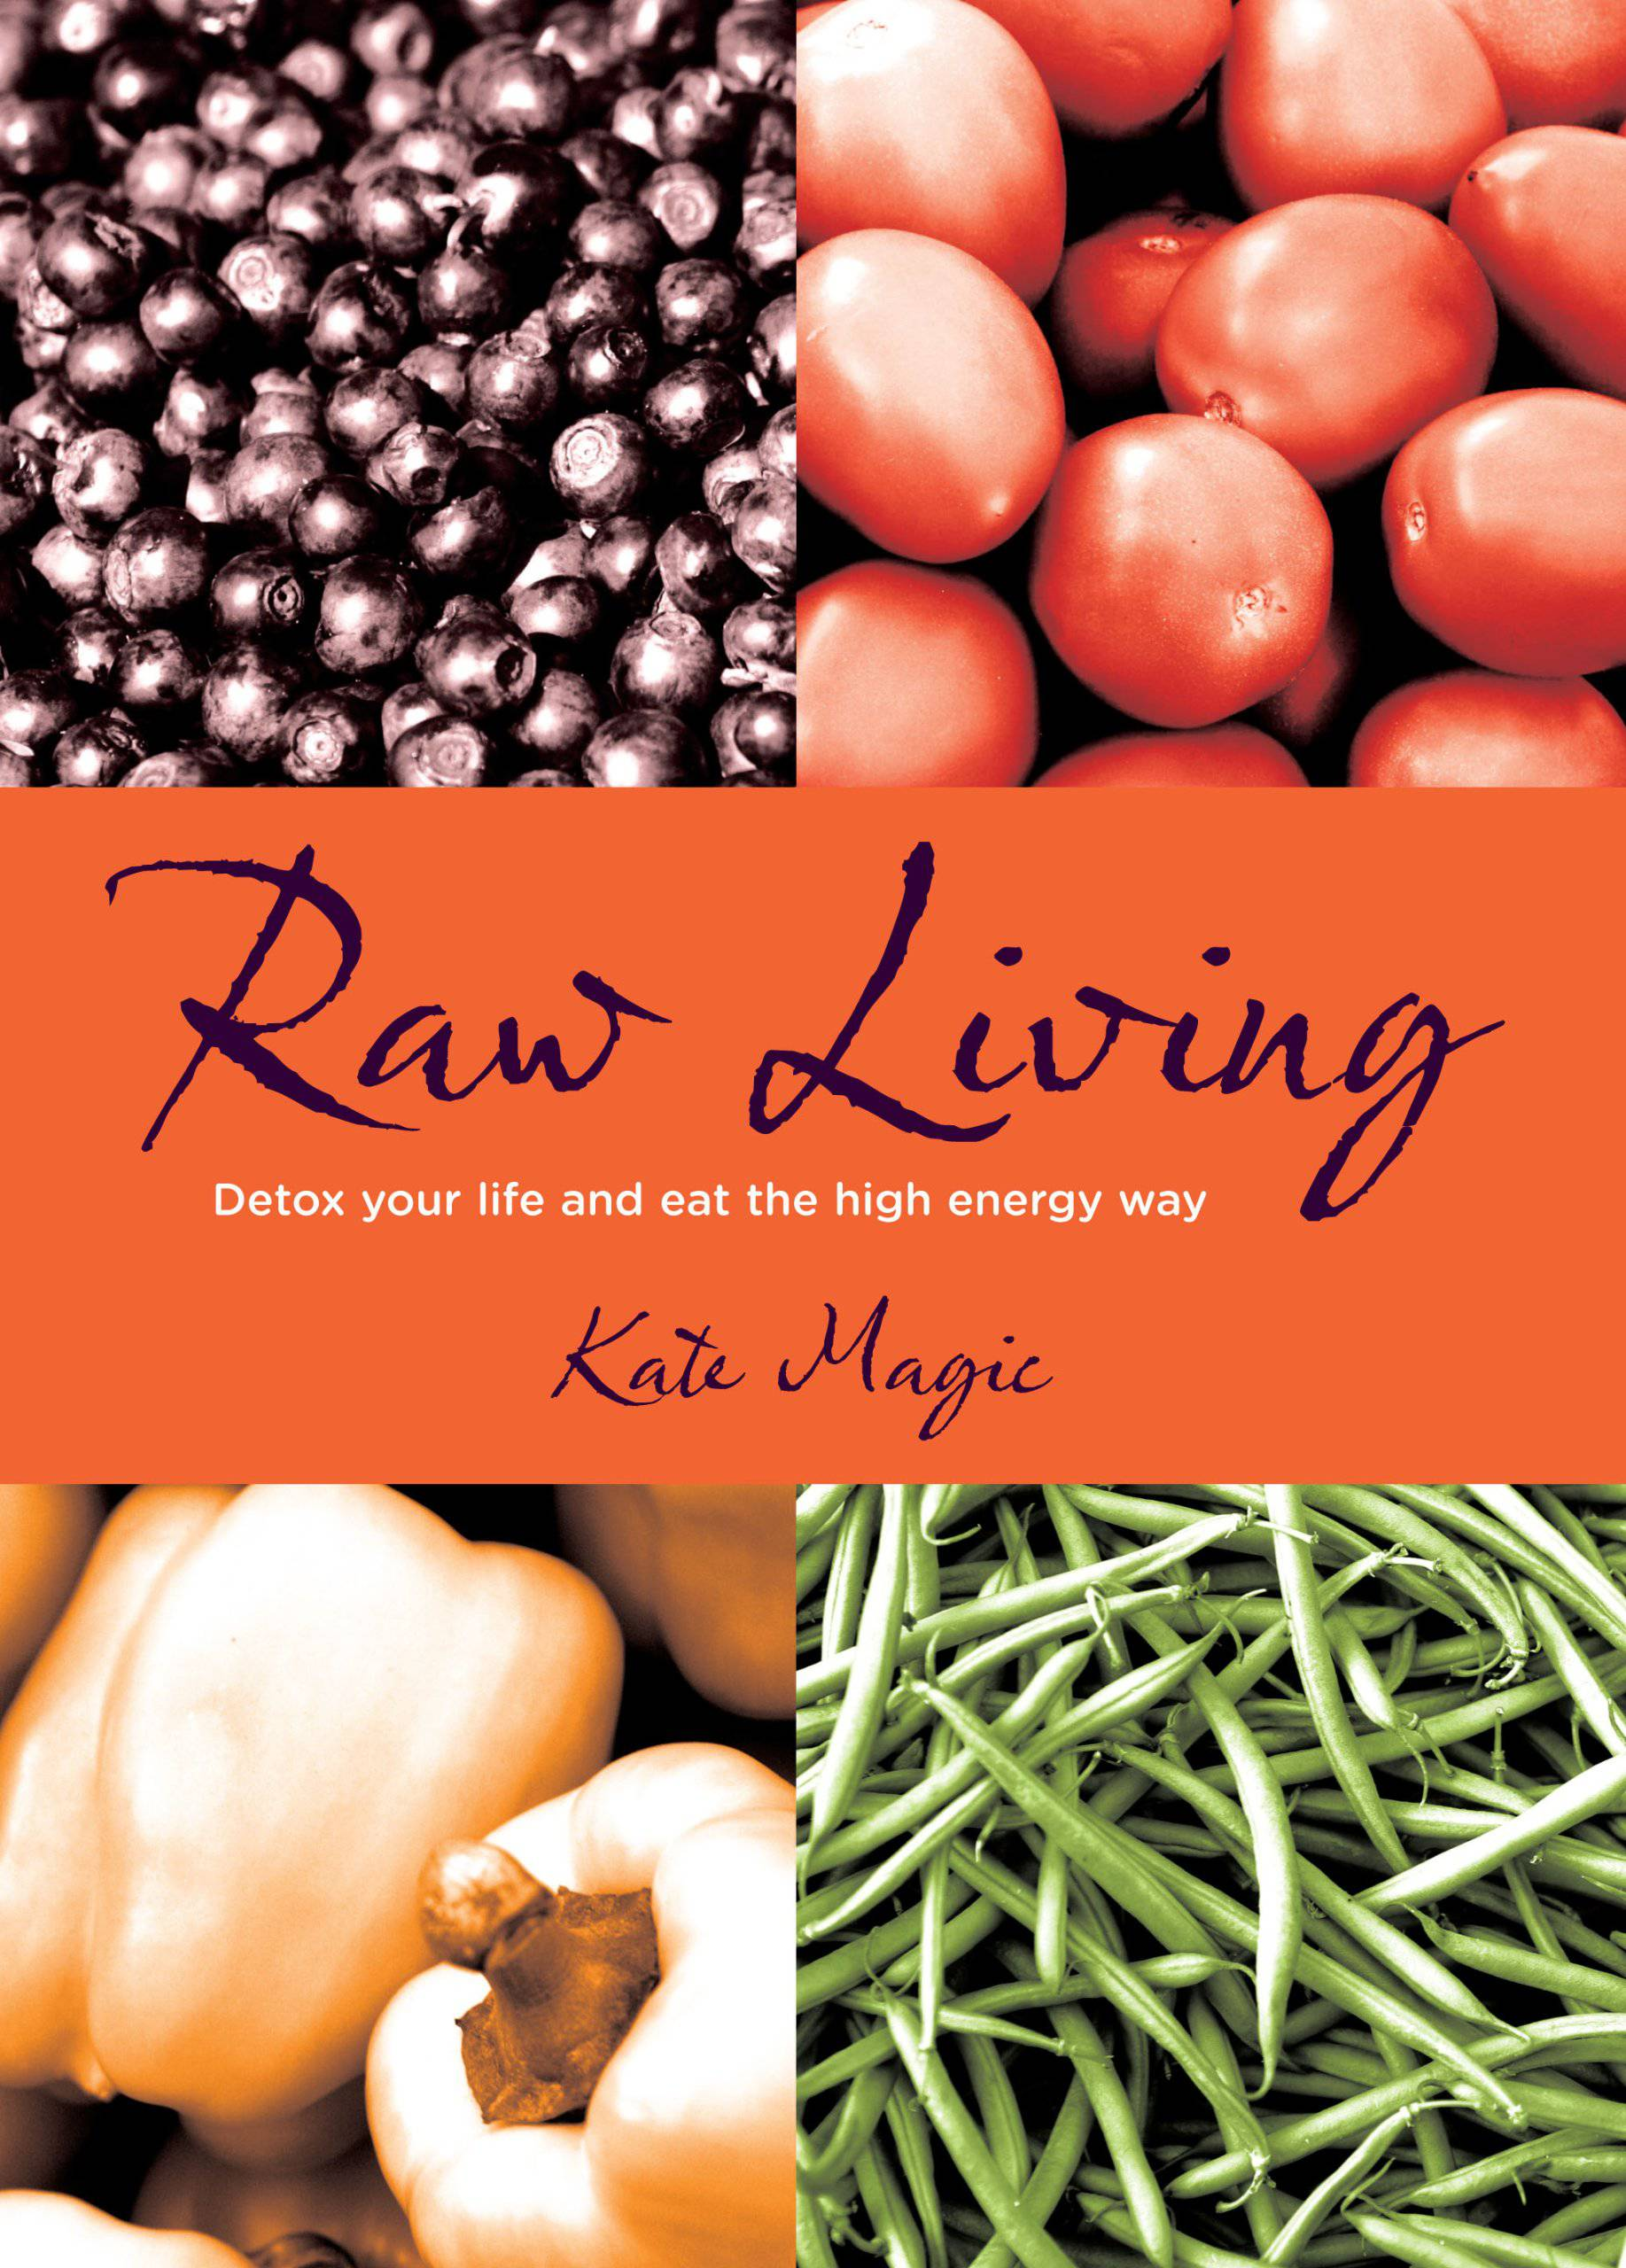 Raw living by Kate Magic